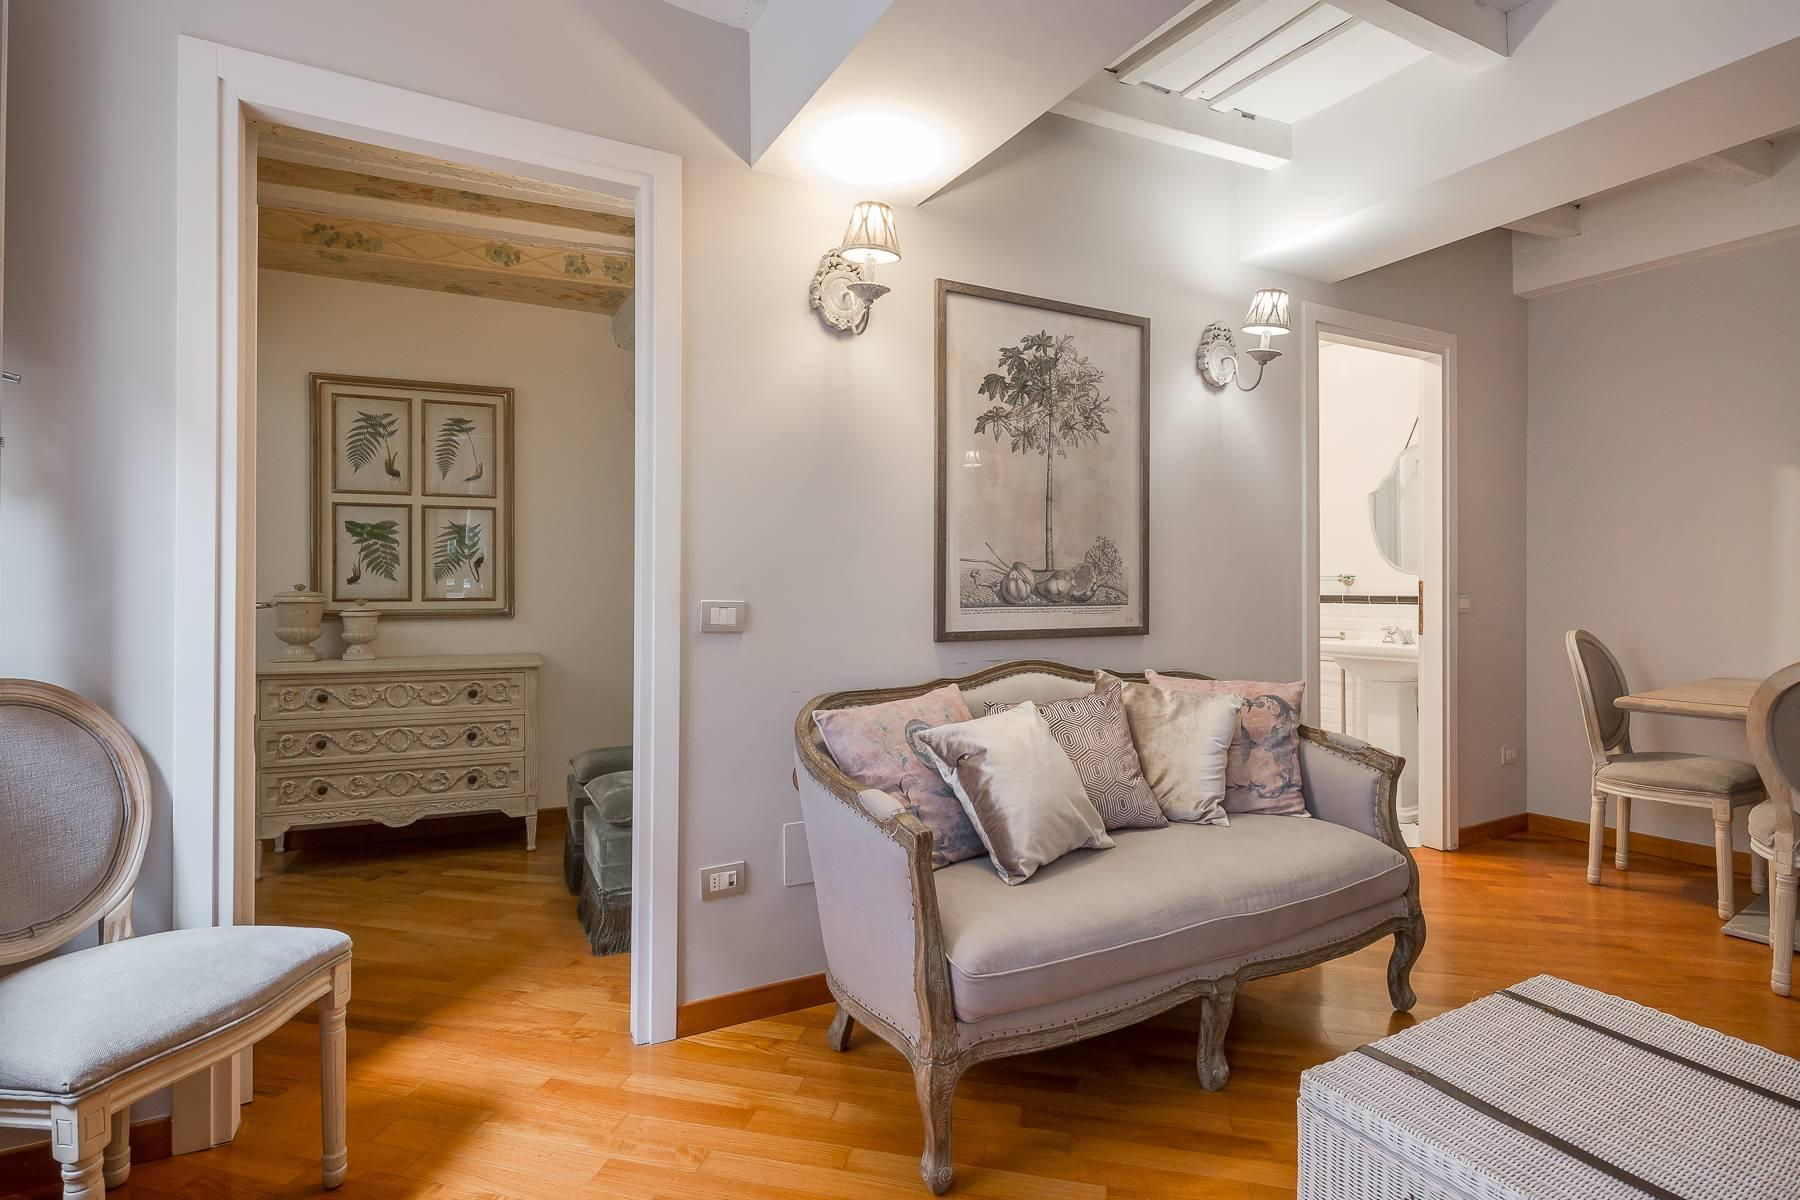 Fully furnished three-room apartment in the heart of Brera - 2